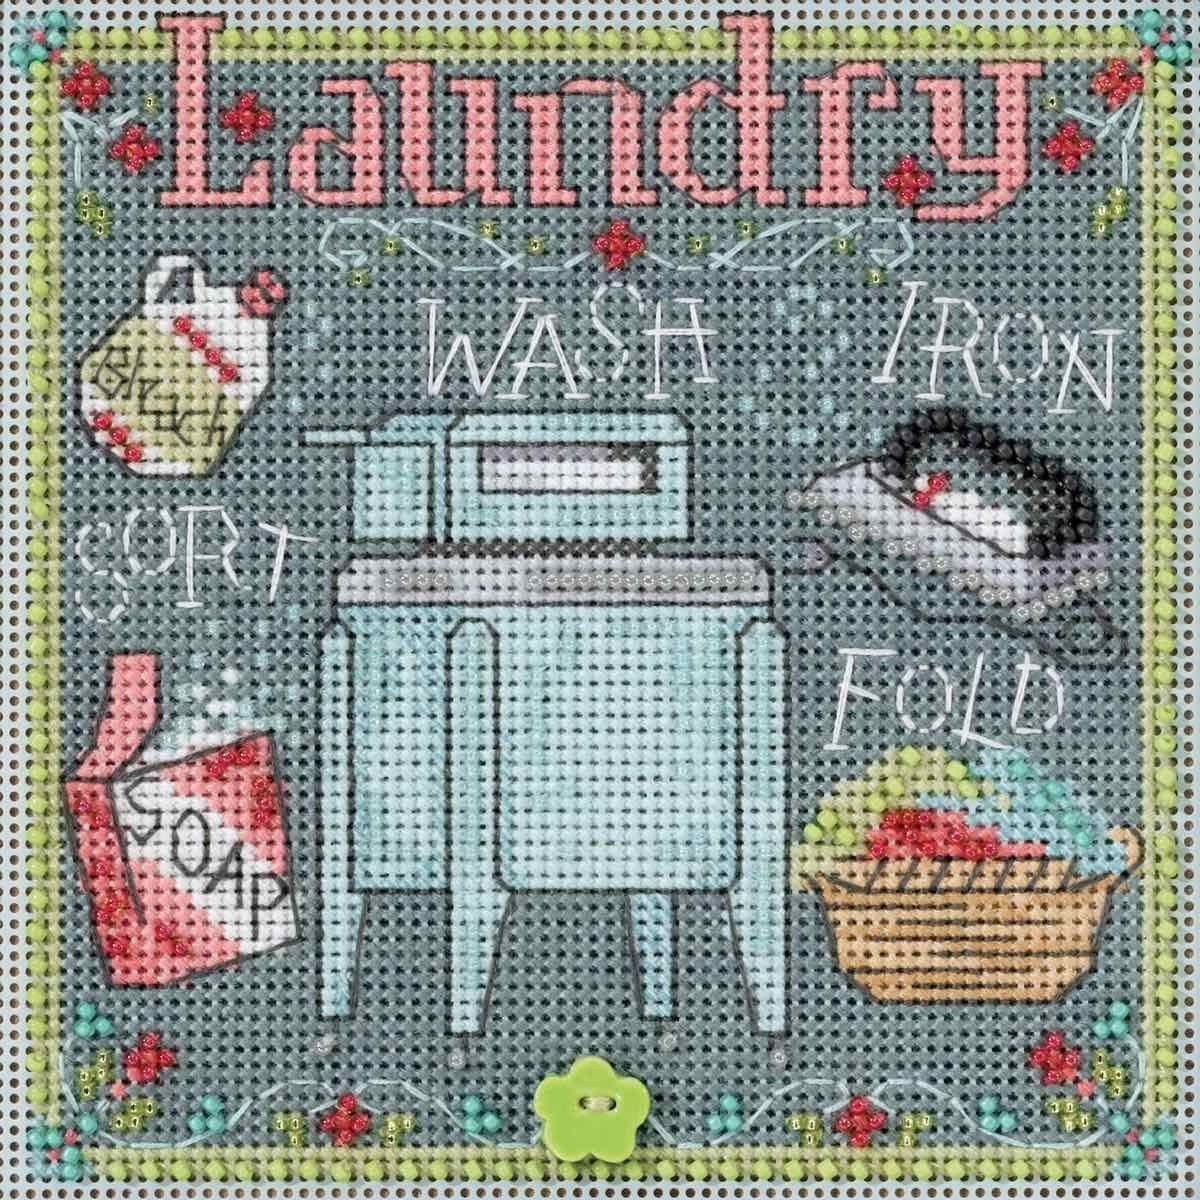 Laundry Beaded Counted Cross Stitch Kit Mill Hill 2017 Buttons Beads Spring MH141716